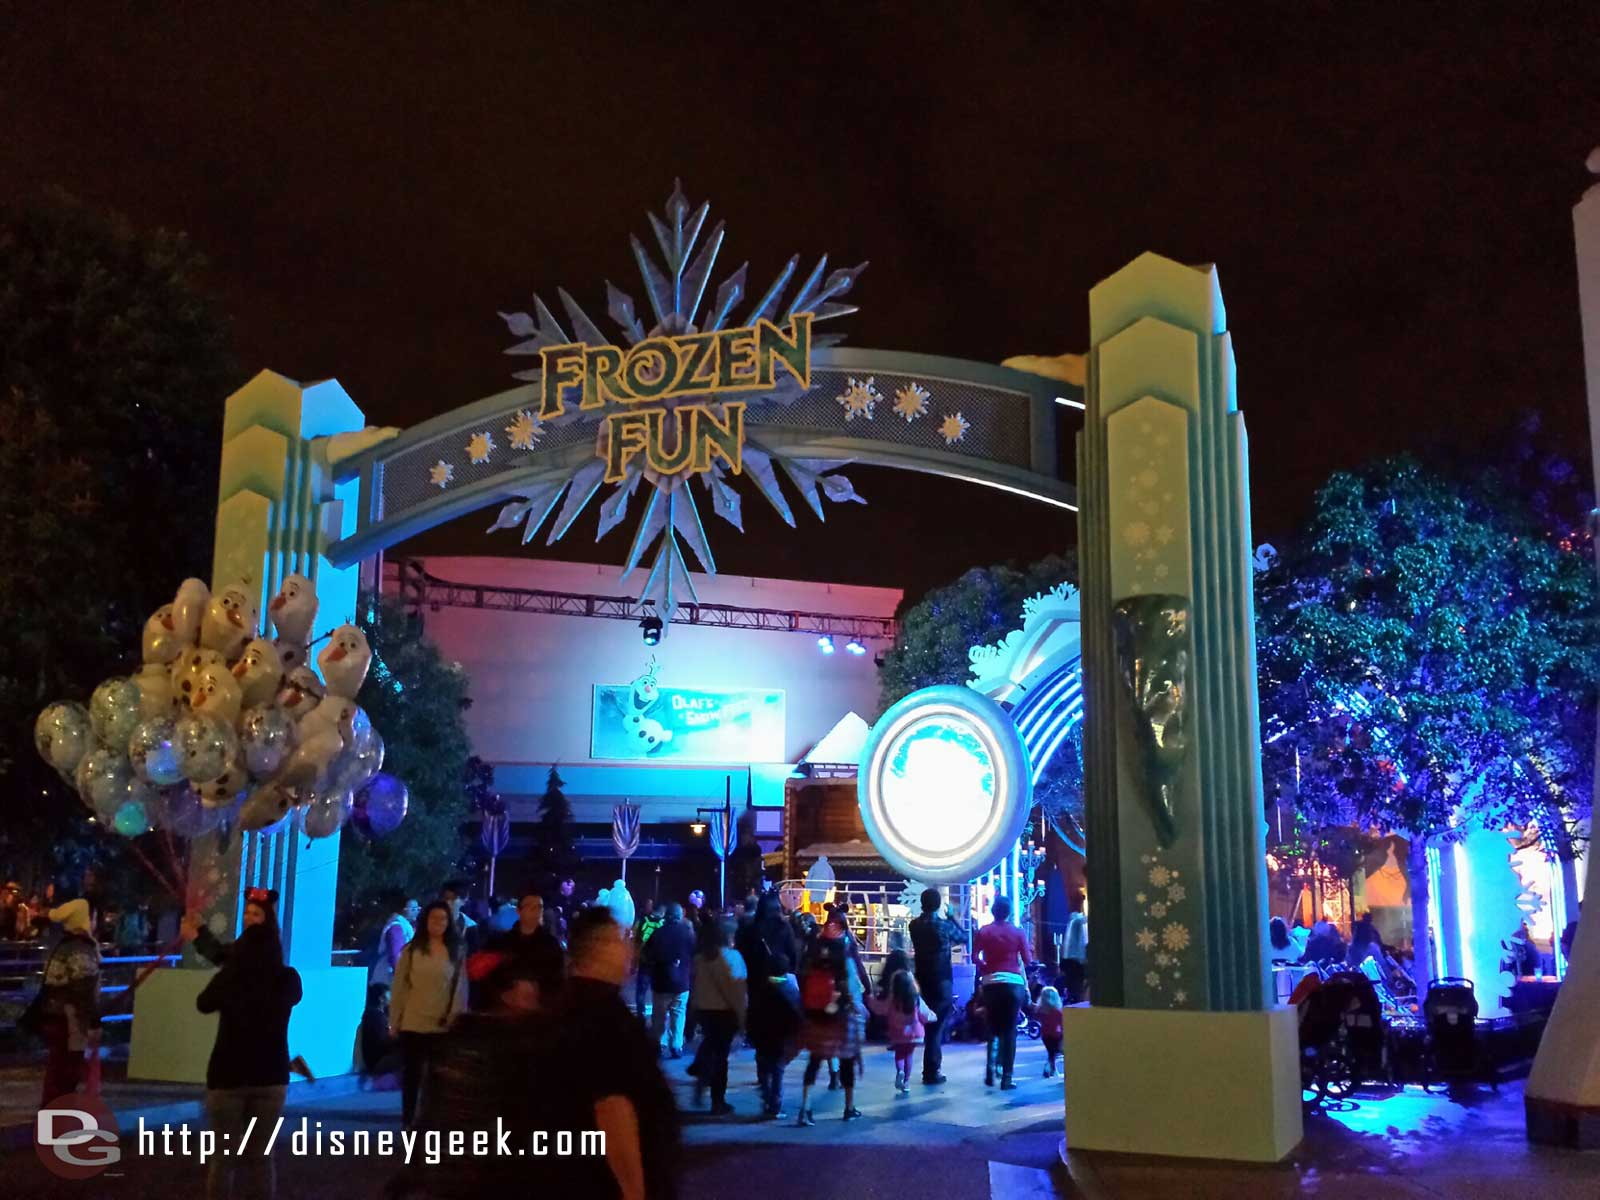 #FrozenFun entrance